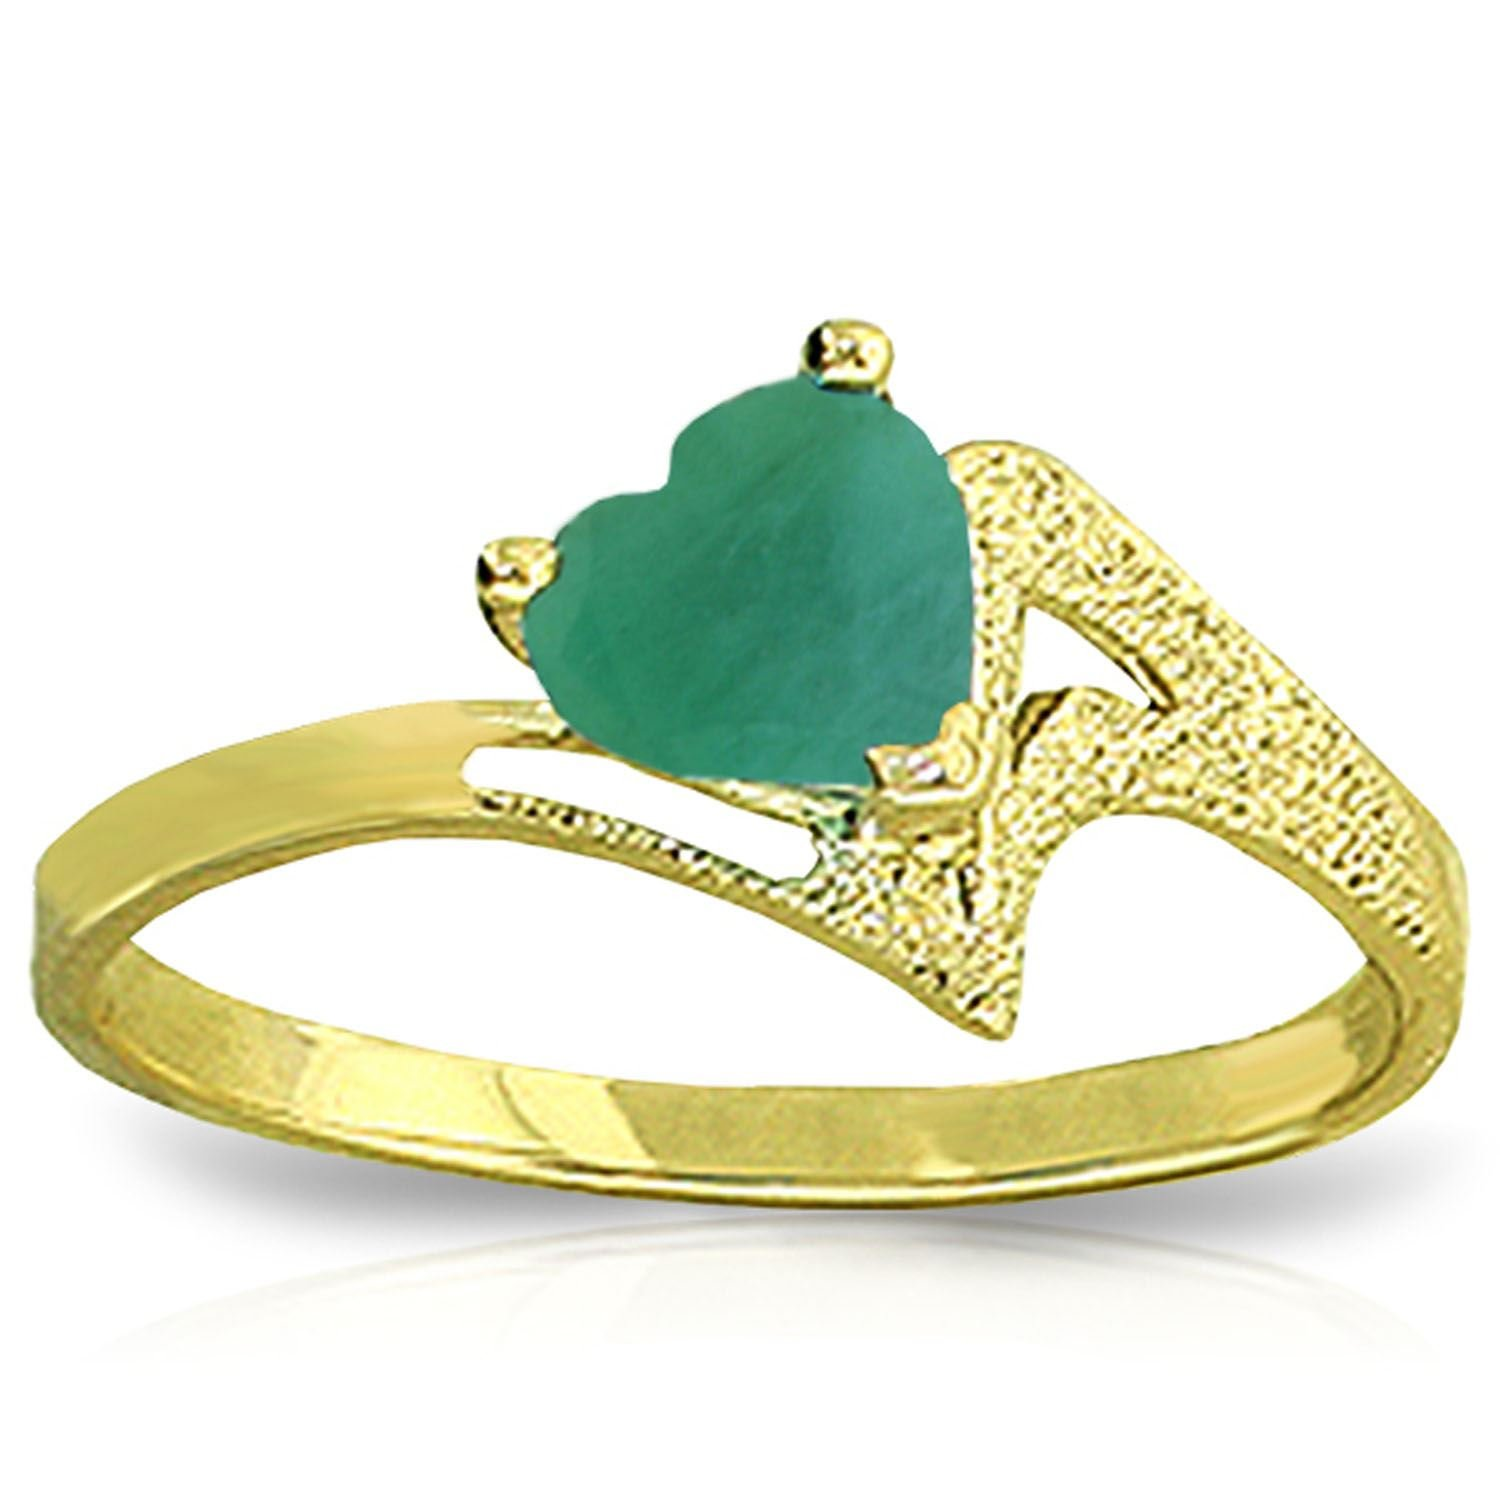 ALARRI 1 Carat 14K Solid Gold Recognize The Love Emerald Ring With Ring Size 8.5